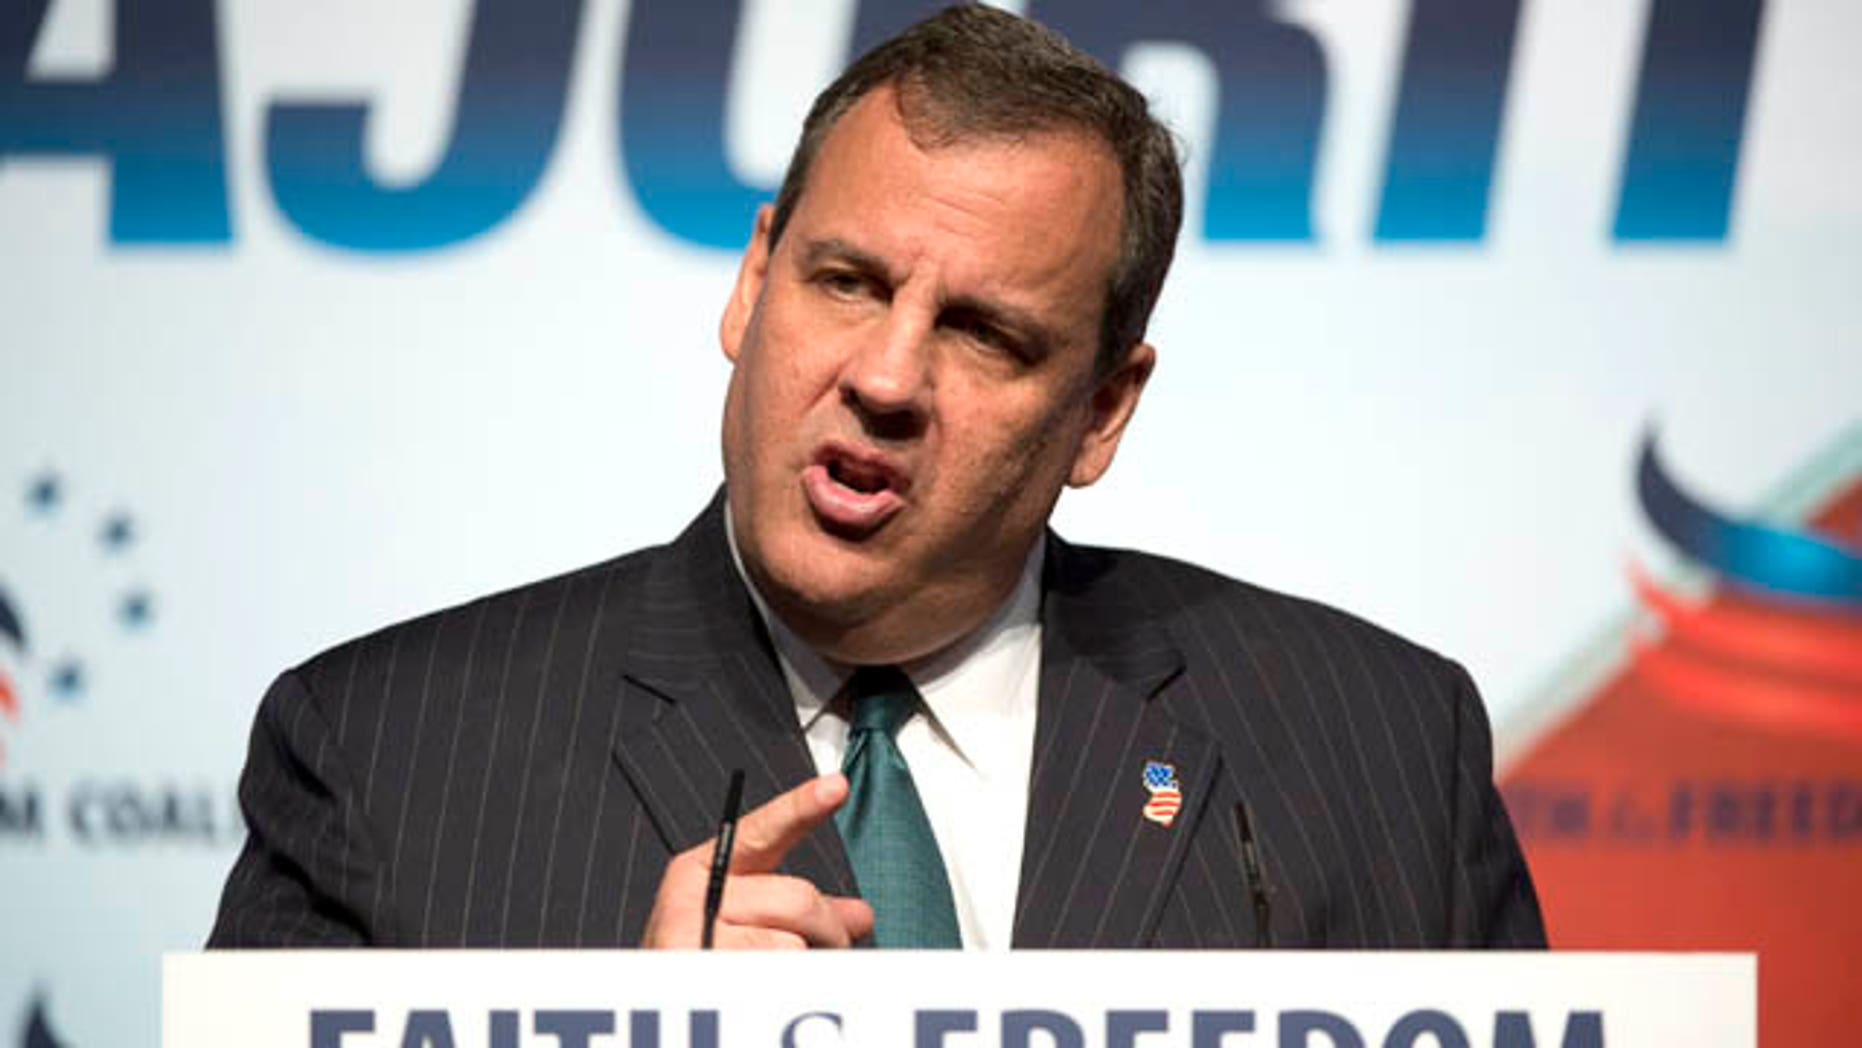 June 20, 2014: New Jersey Gov. Chris Christie speaks at the Faith and Freedom Coalition's Road to Majority event in Washington. (AP Photo/Molly Riley)